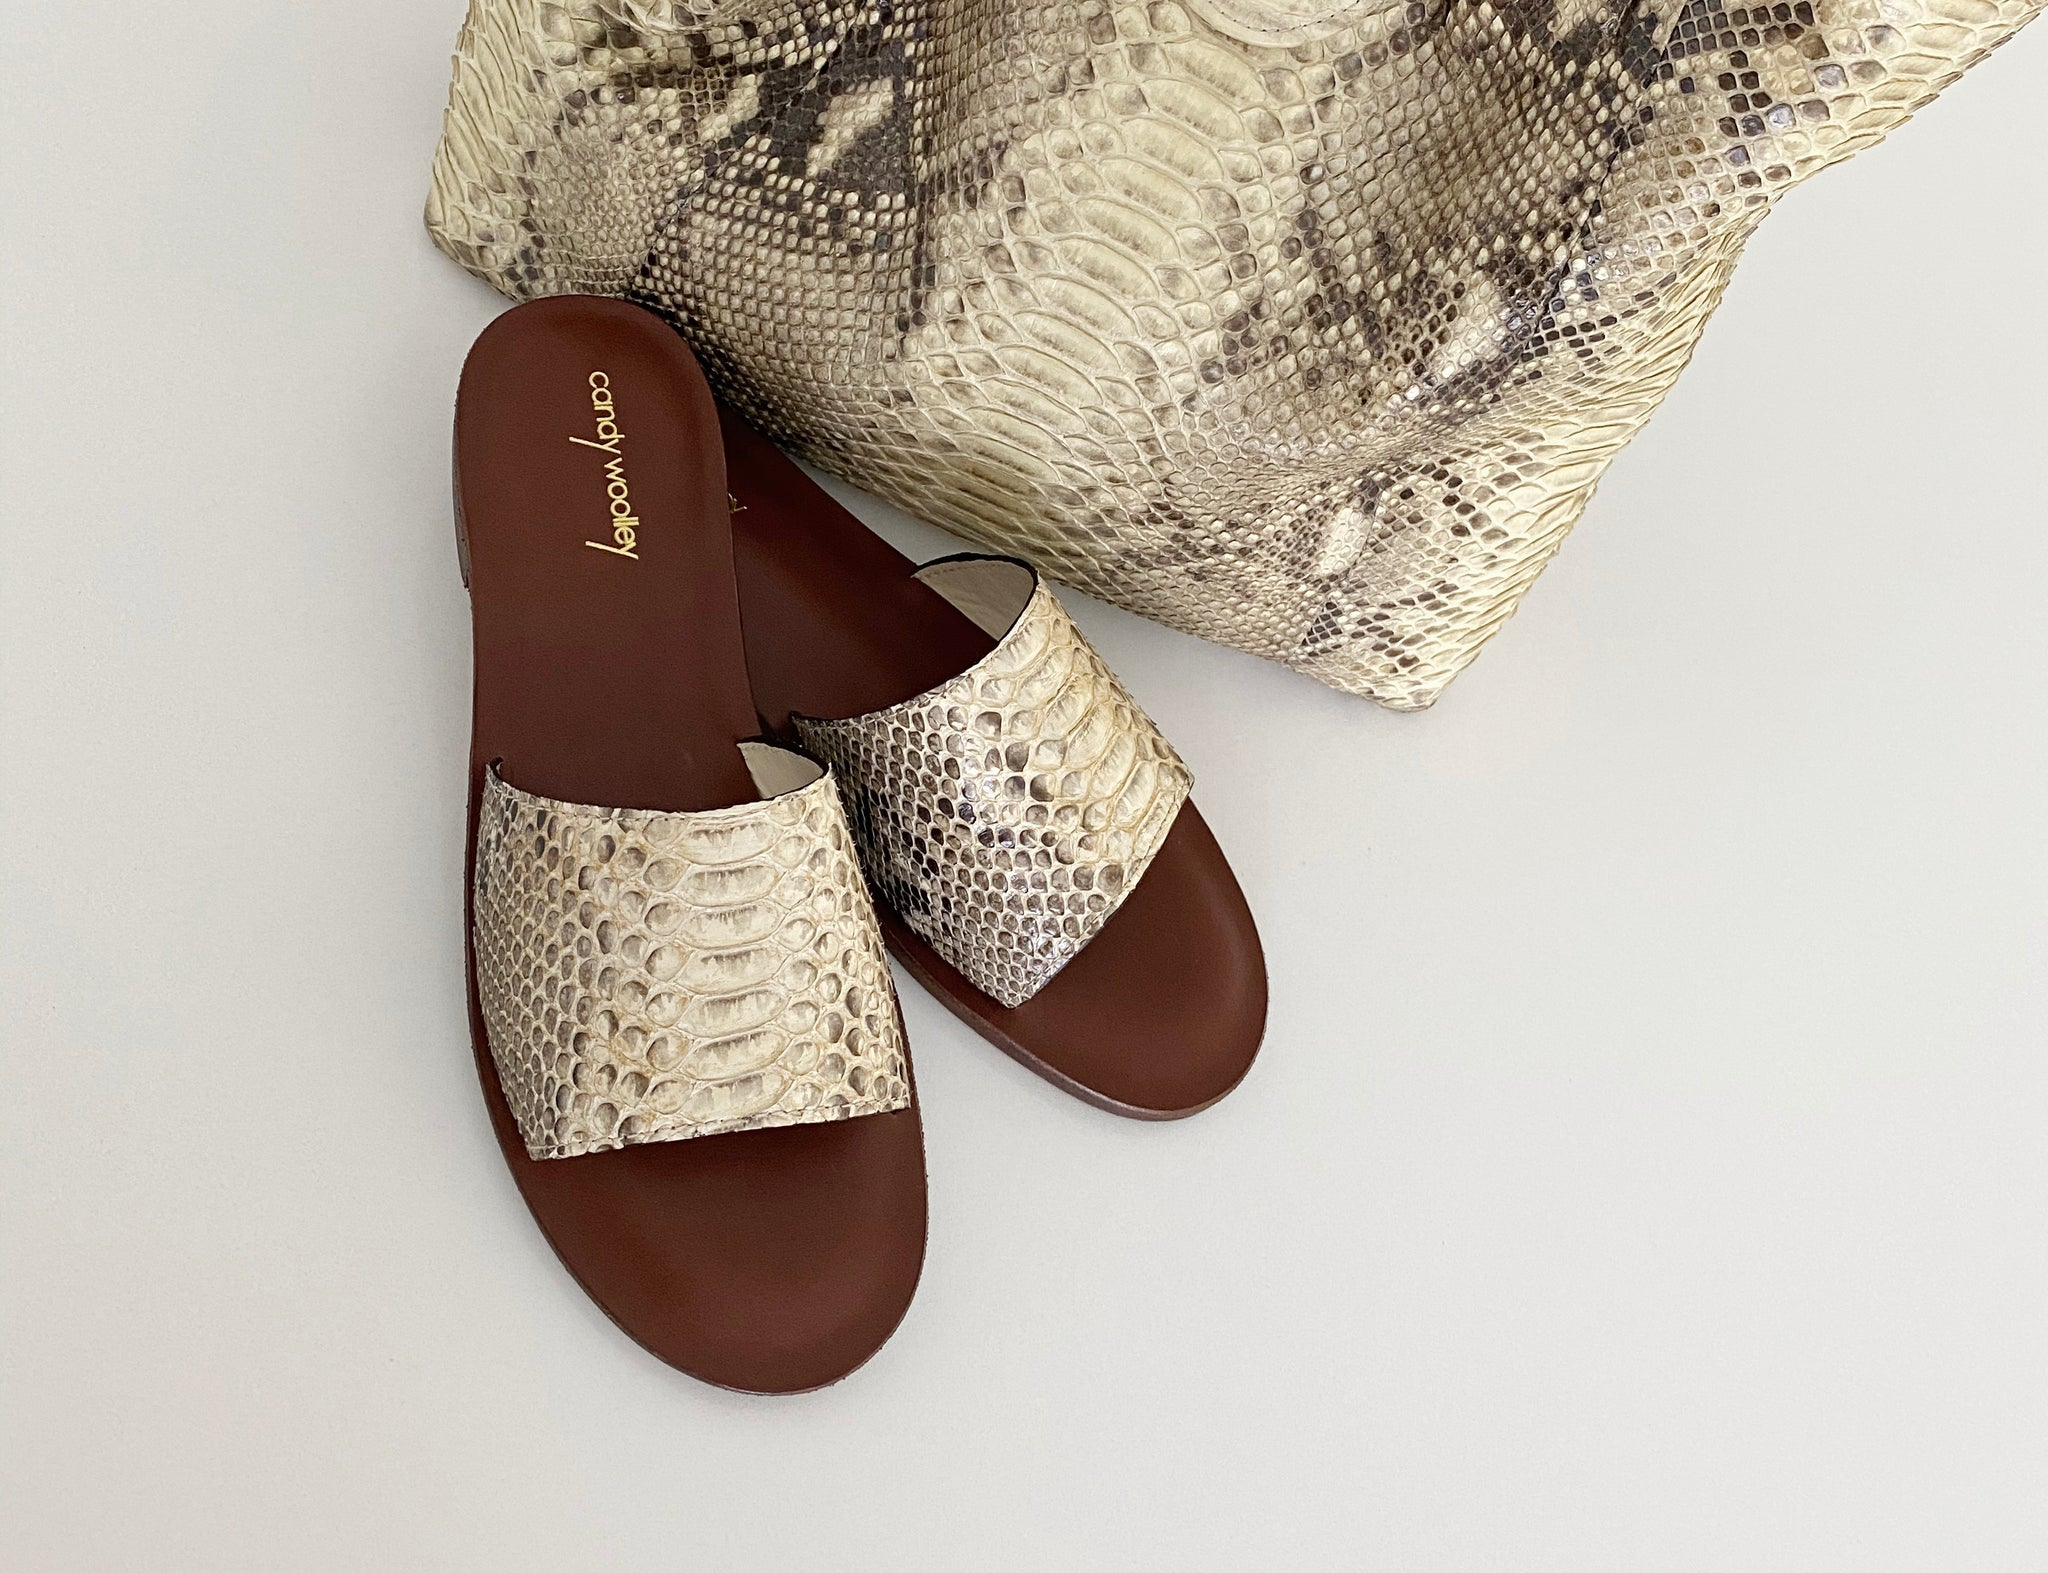 Python Flat Slide Sandals. Sizes Available 6-11. [NEW: NON-SLIP & SOLE PROTECTOR]